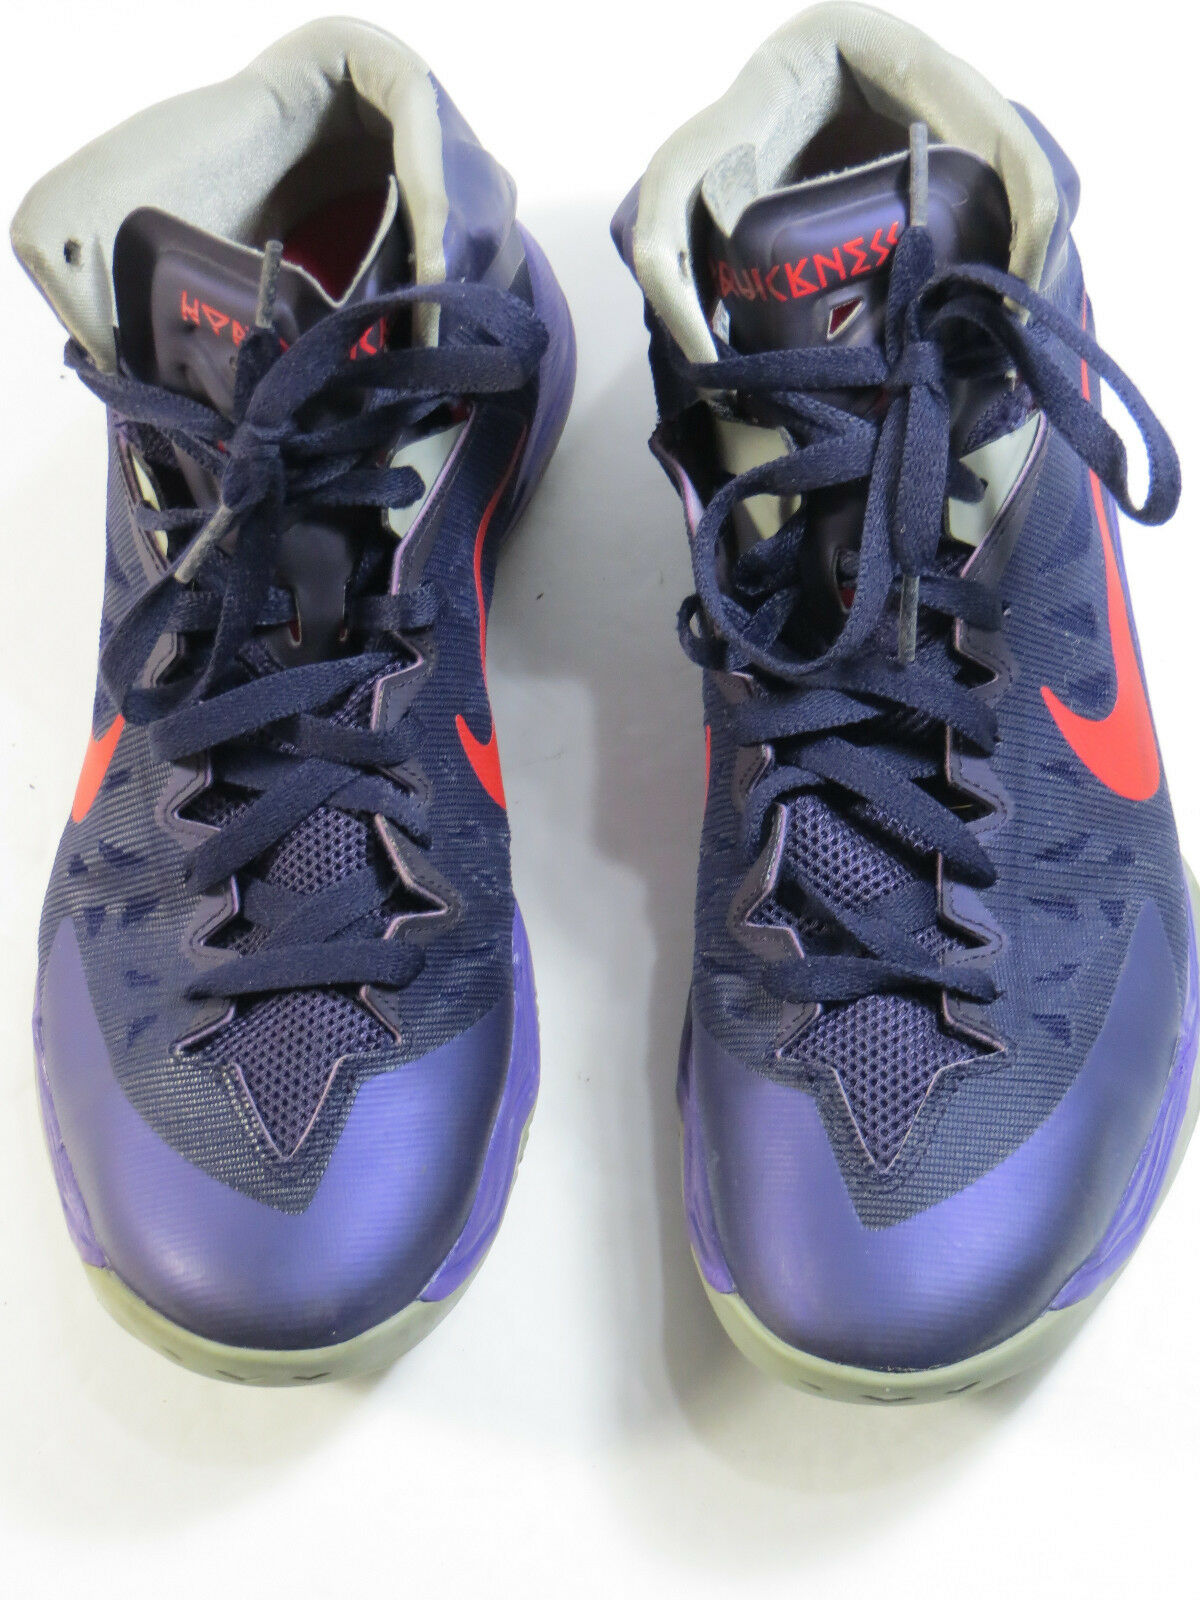 cheap for discount 332fe a1f30 Ex cond Men s NIKE Purple Basketball shoes 599519500-size 11.5 M Zoom  onmsfc5448-Athletic Shoes